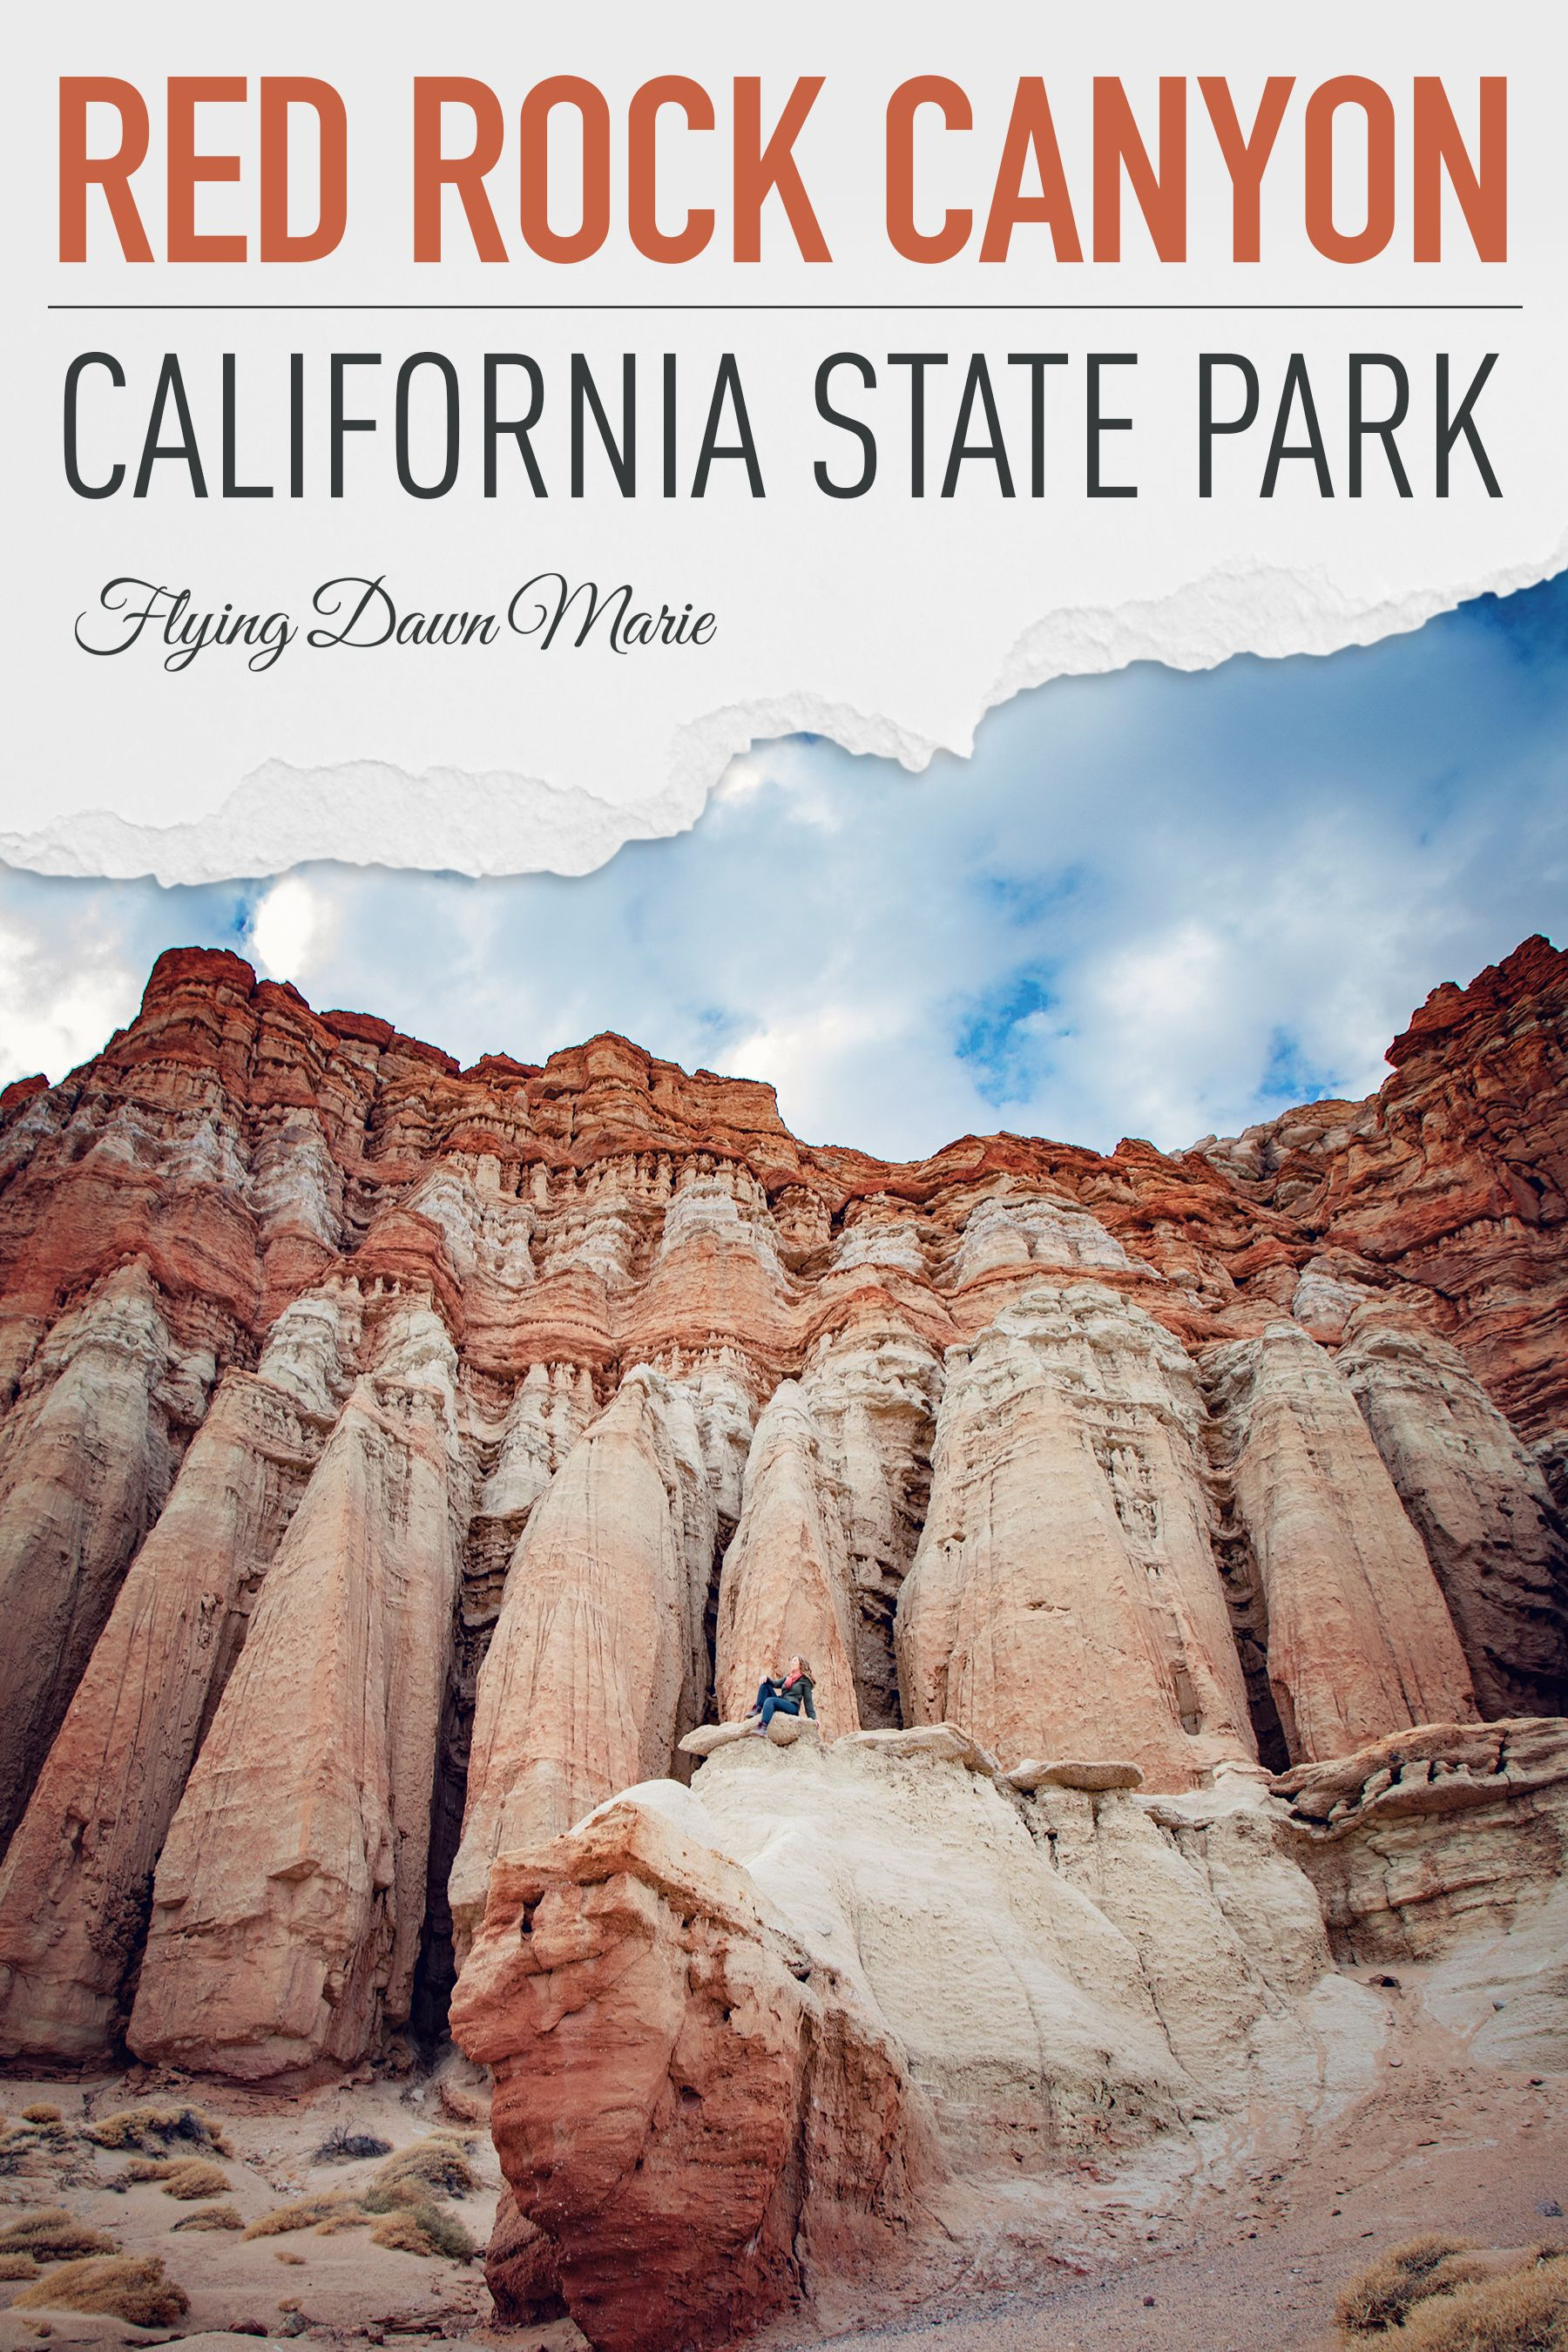 Red Rock Canyon State Park - CA's most underrated